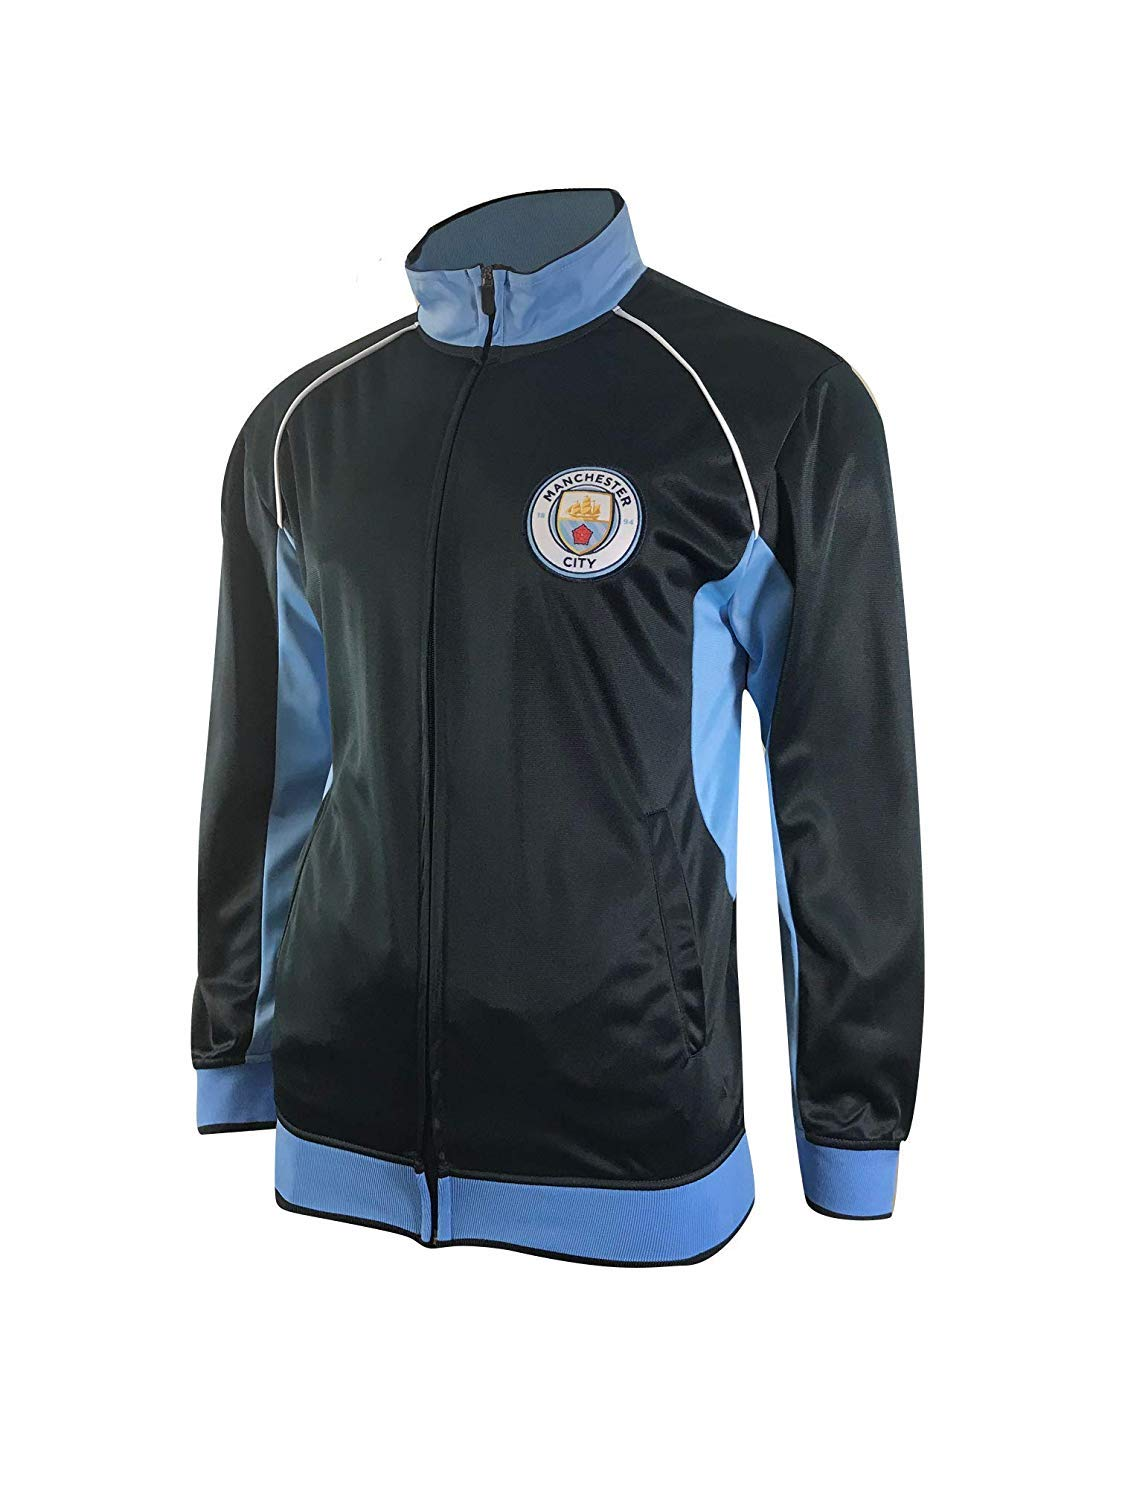 Manchester City Track Jacket Youth Boys Zip Front Soccer Football Official Merchandise (YM, Navy item# K_BB1D-02) by Isports